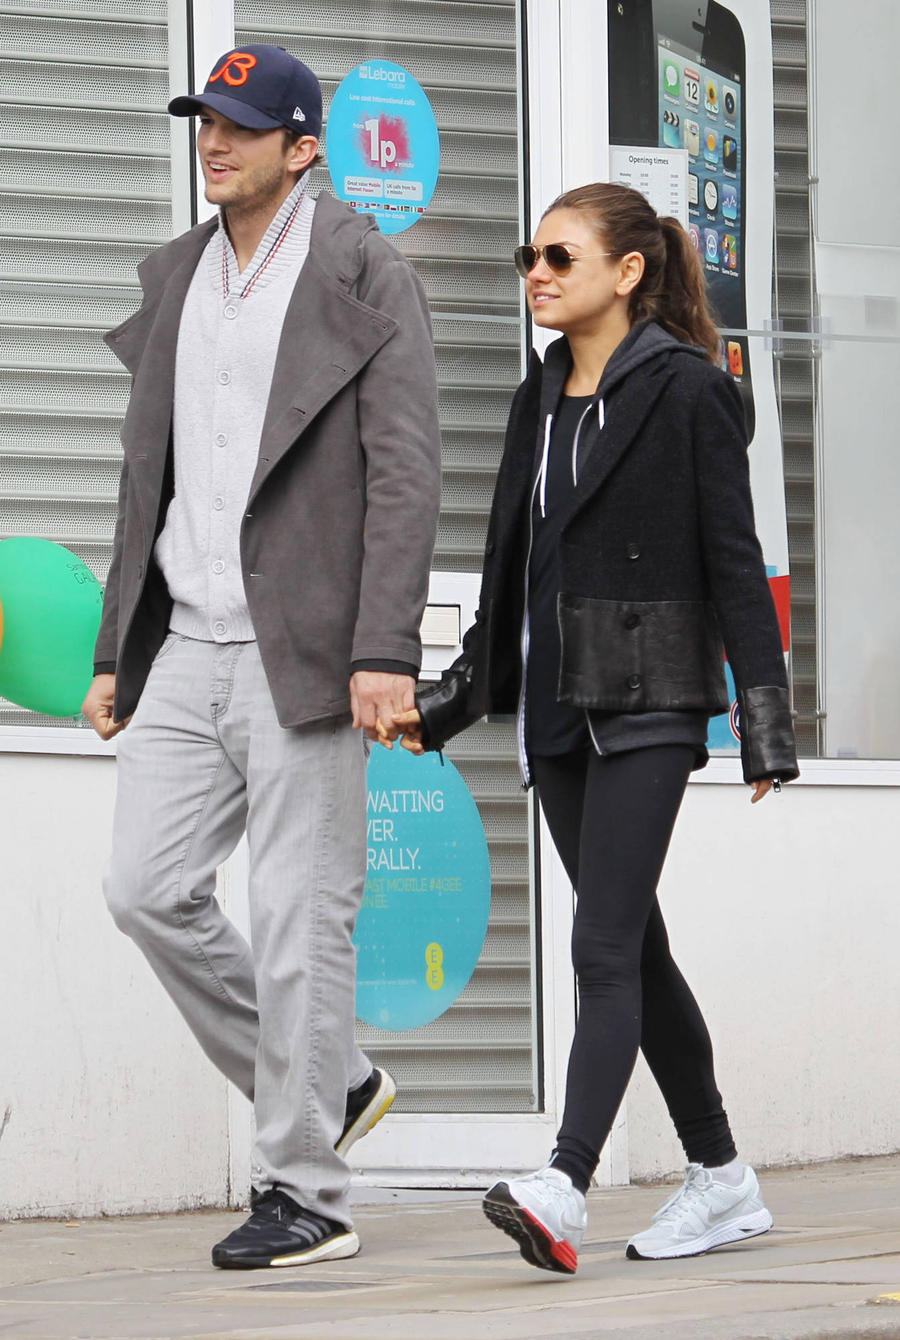 Ashton Kutcher Is Keen To Make More Babies With Mila Kunis